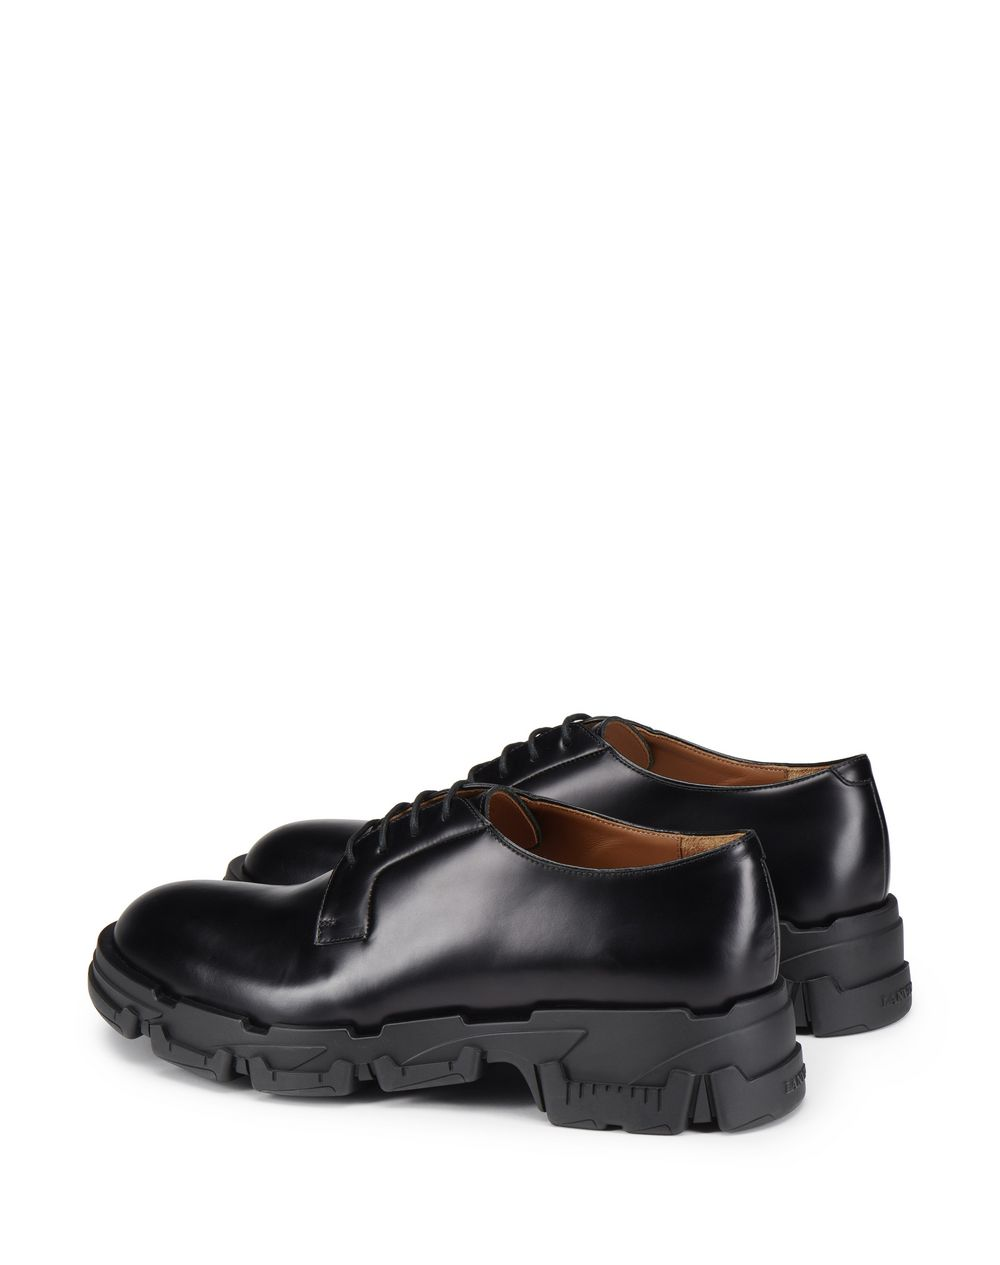 SPAZZOLATO LEATHER DERBY SHOE - Lanvin